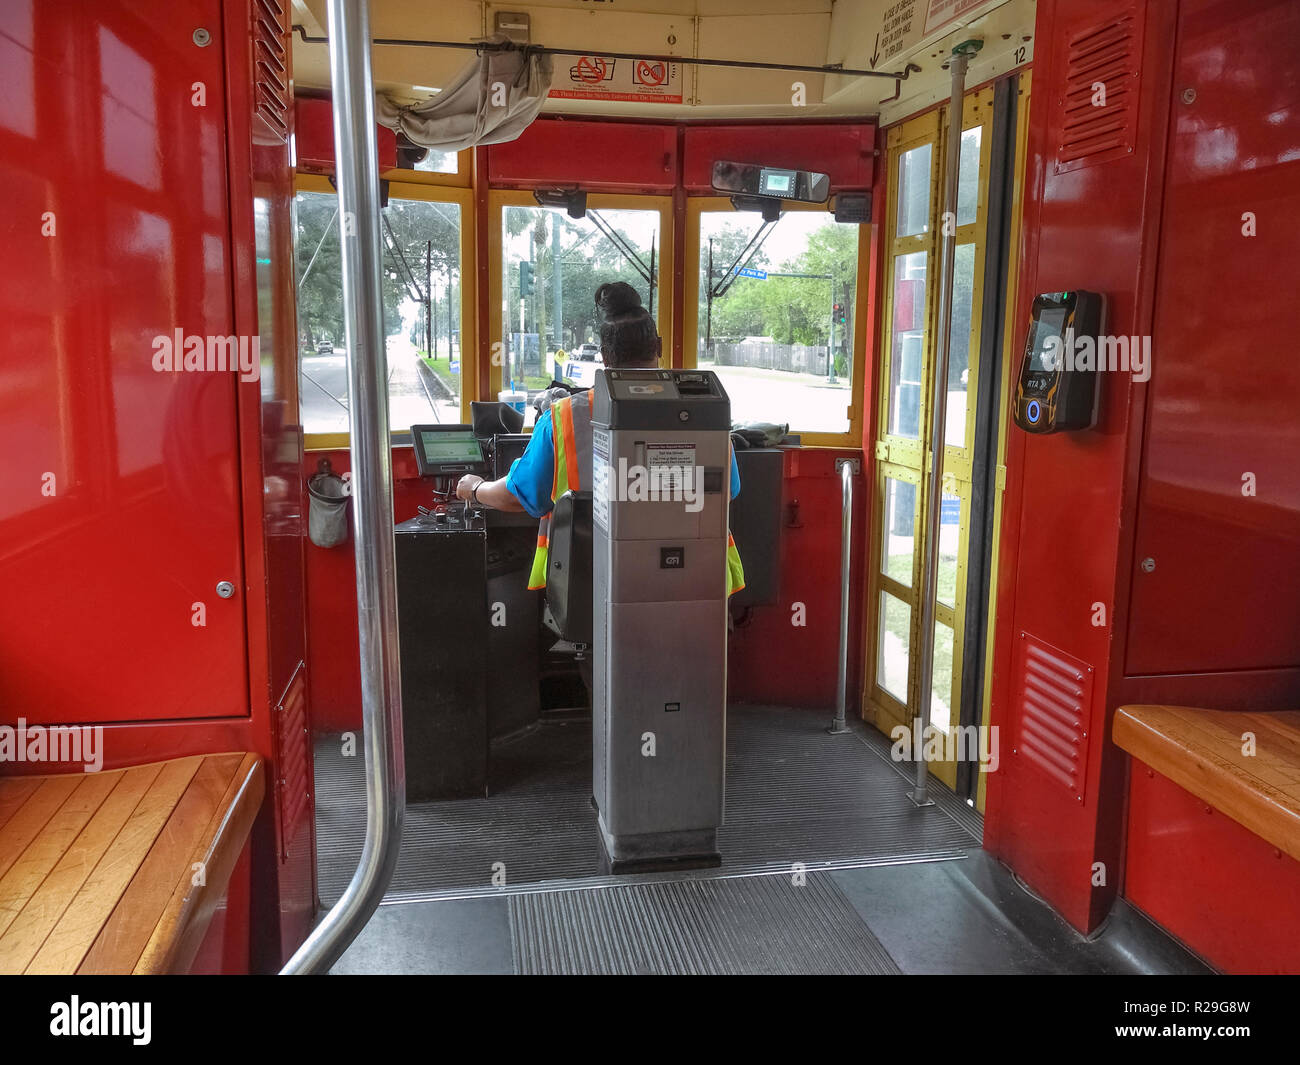 Inside a streetcar looking past the self-service ticket machine and the female driver of such historic electric vehicles that have been providing public transportation on steel rails throughout the southern city of New Orleans, Louisiana, USA, for more than a century. Twenty-five miles of track host four streetcar lines, including the iconic St. Charles line that started service in 1835 and is the oldest continuously-operating streetcar line in the world. The red car seen here travels through the heart of the city on the Canal Street line and takes about 30 minutes to ride from end to end. - Stock Image